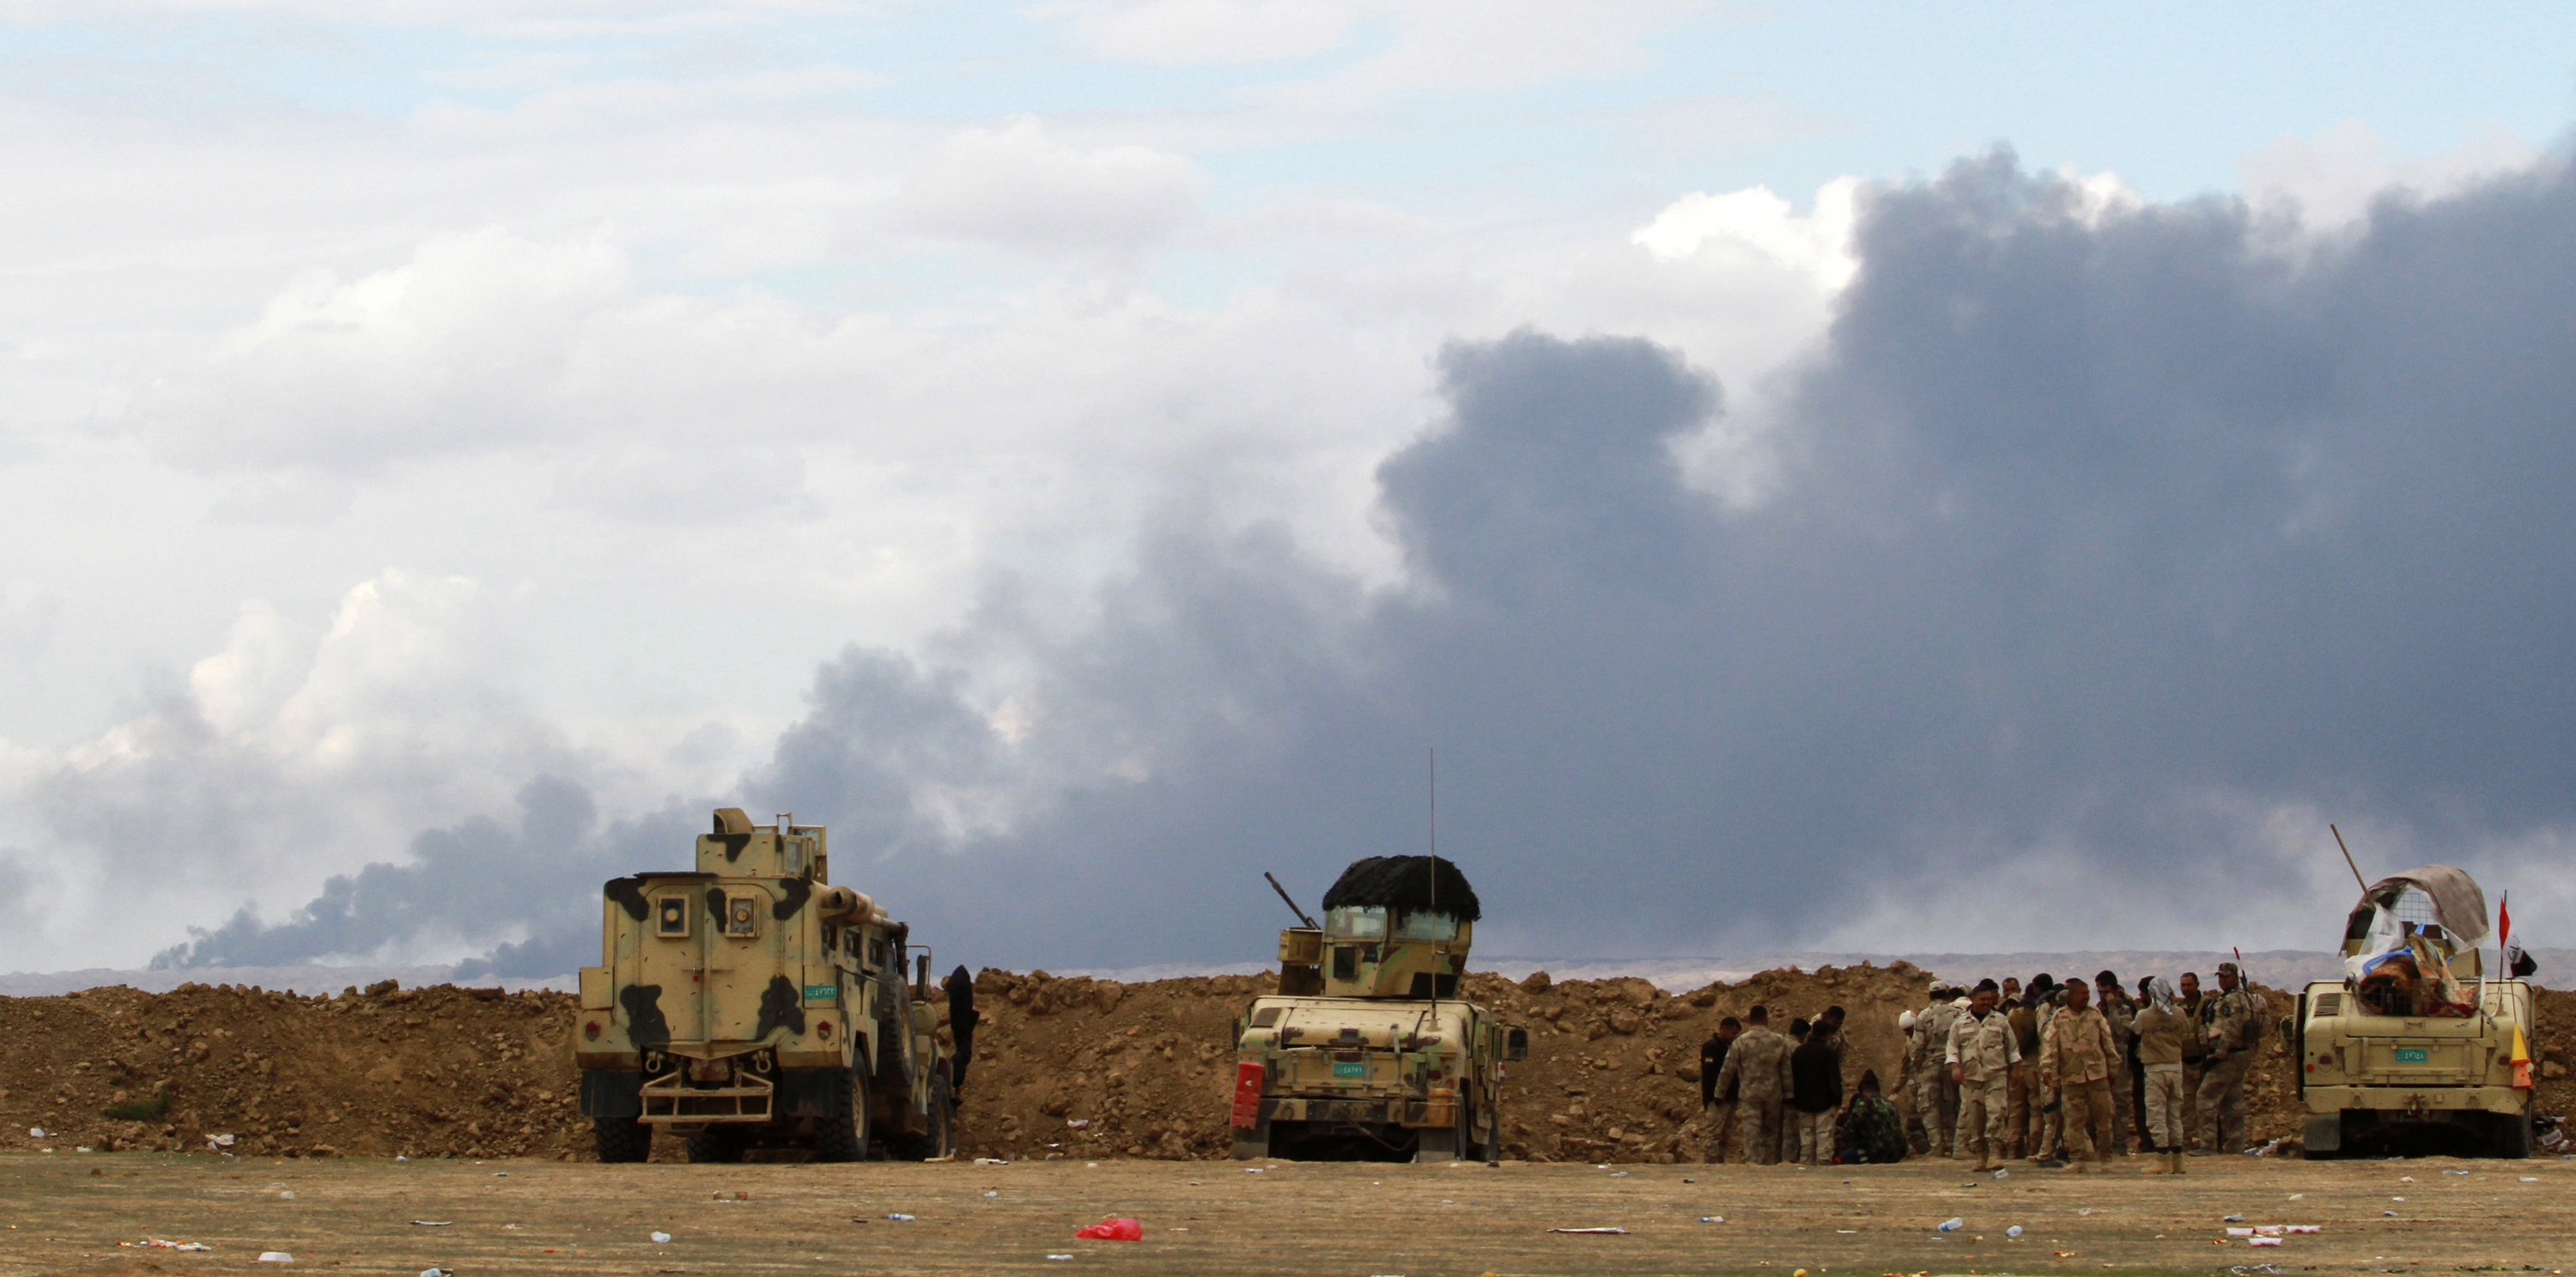 Iraqi soldiers gather near vehicles as smoke rises from oil wells in the Ajil field east of Tikrit in the Salahuddin province that were set on fire by Islamic State militants, March 4, 2015.